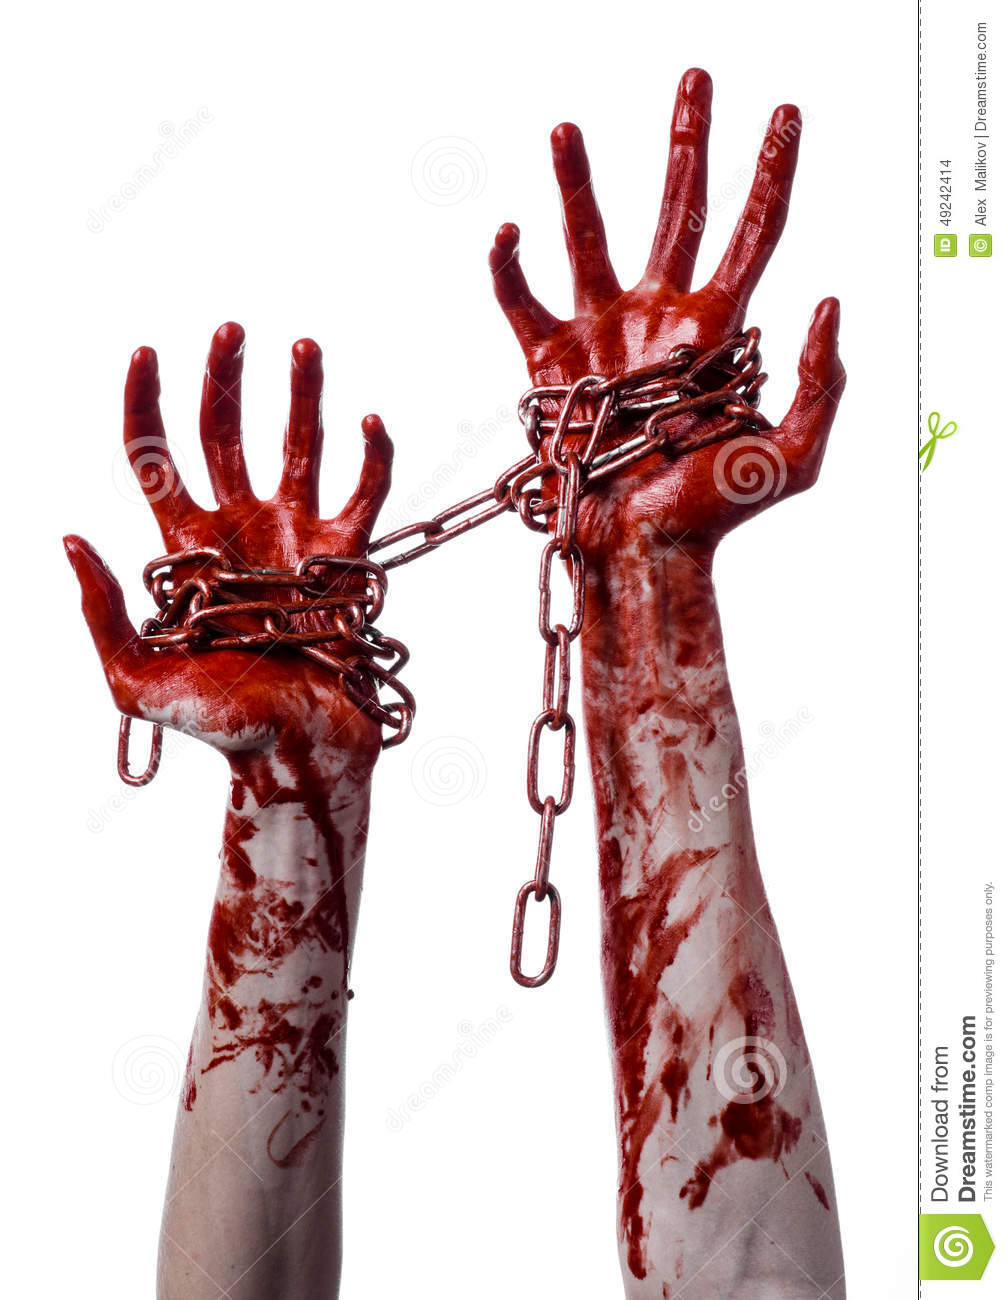 bloody hand holding - photo #23